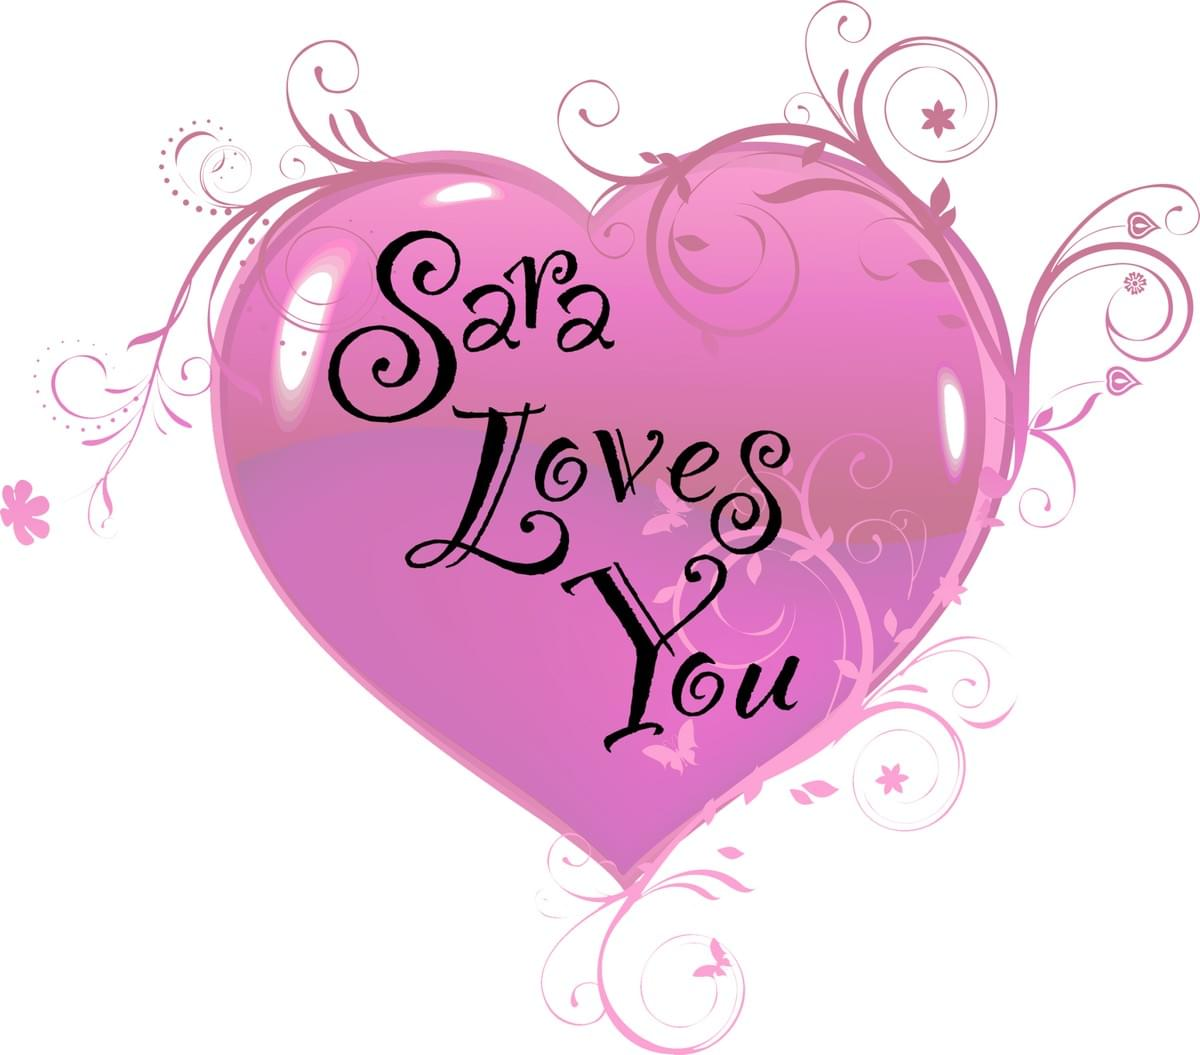 SARA LOVES YOU